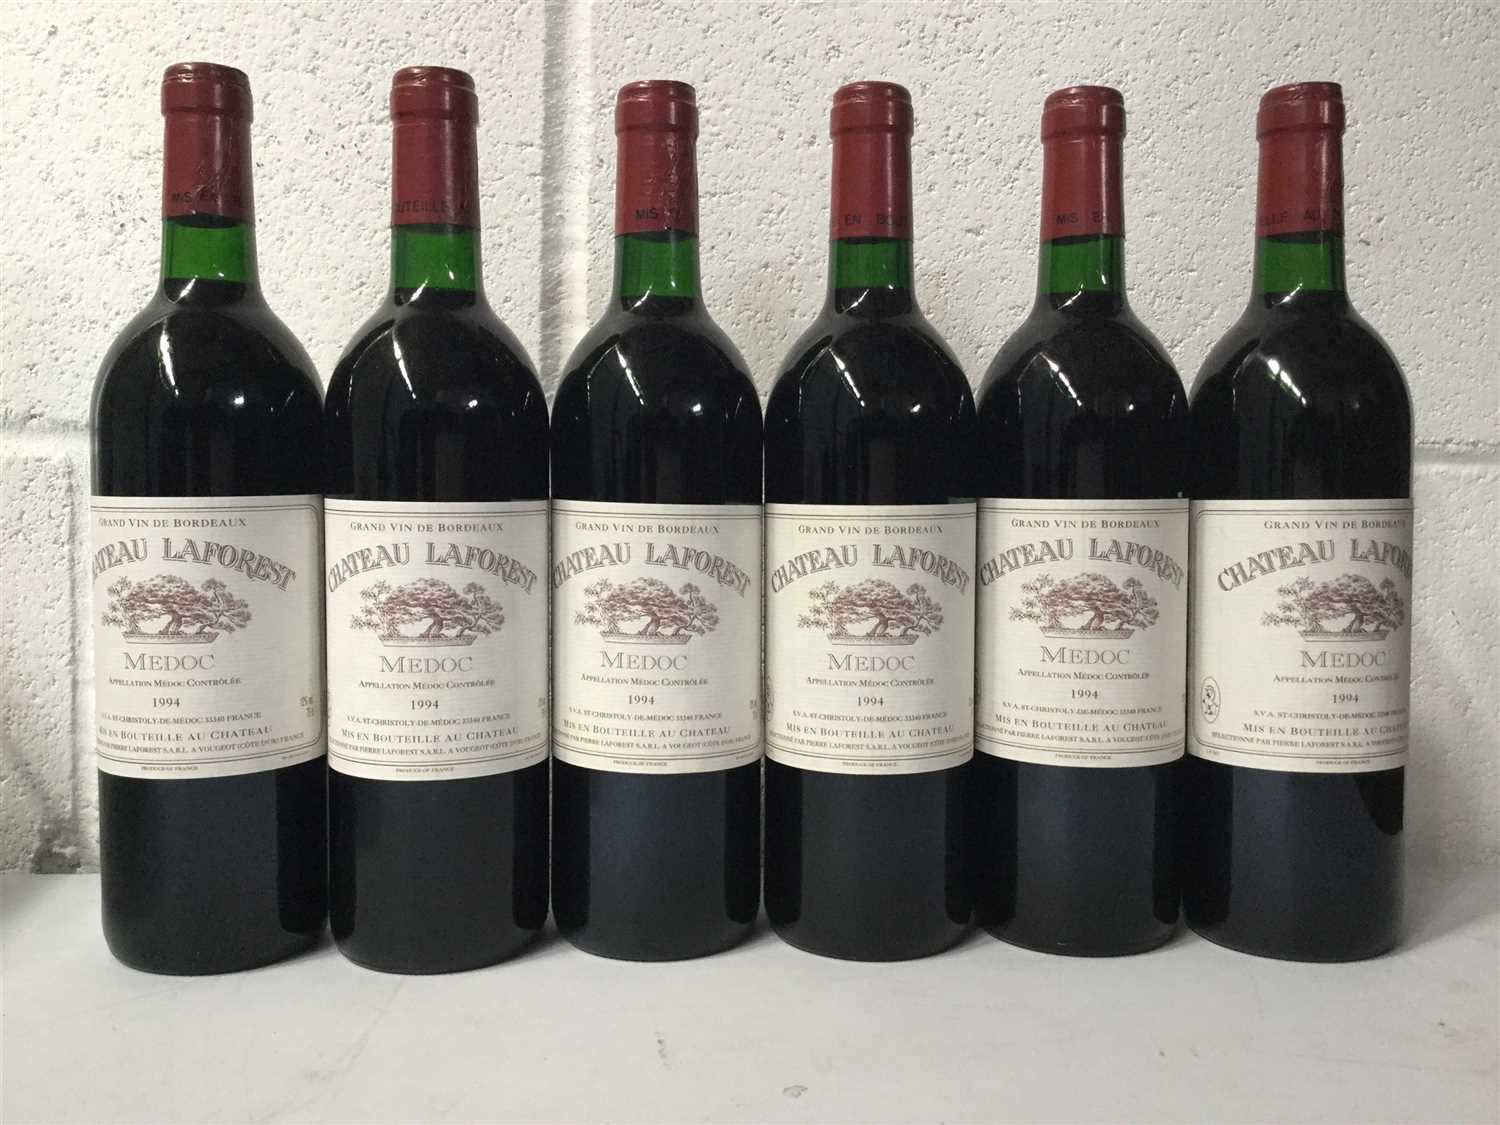 Lot 2023-SIX BOTTLES OF CHATEAU LAFOREST 1994